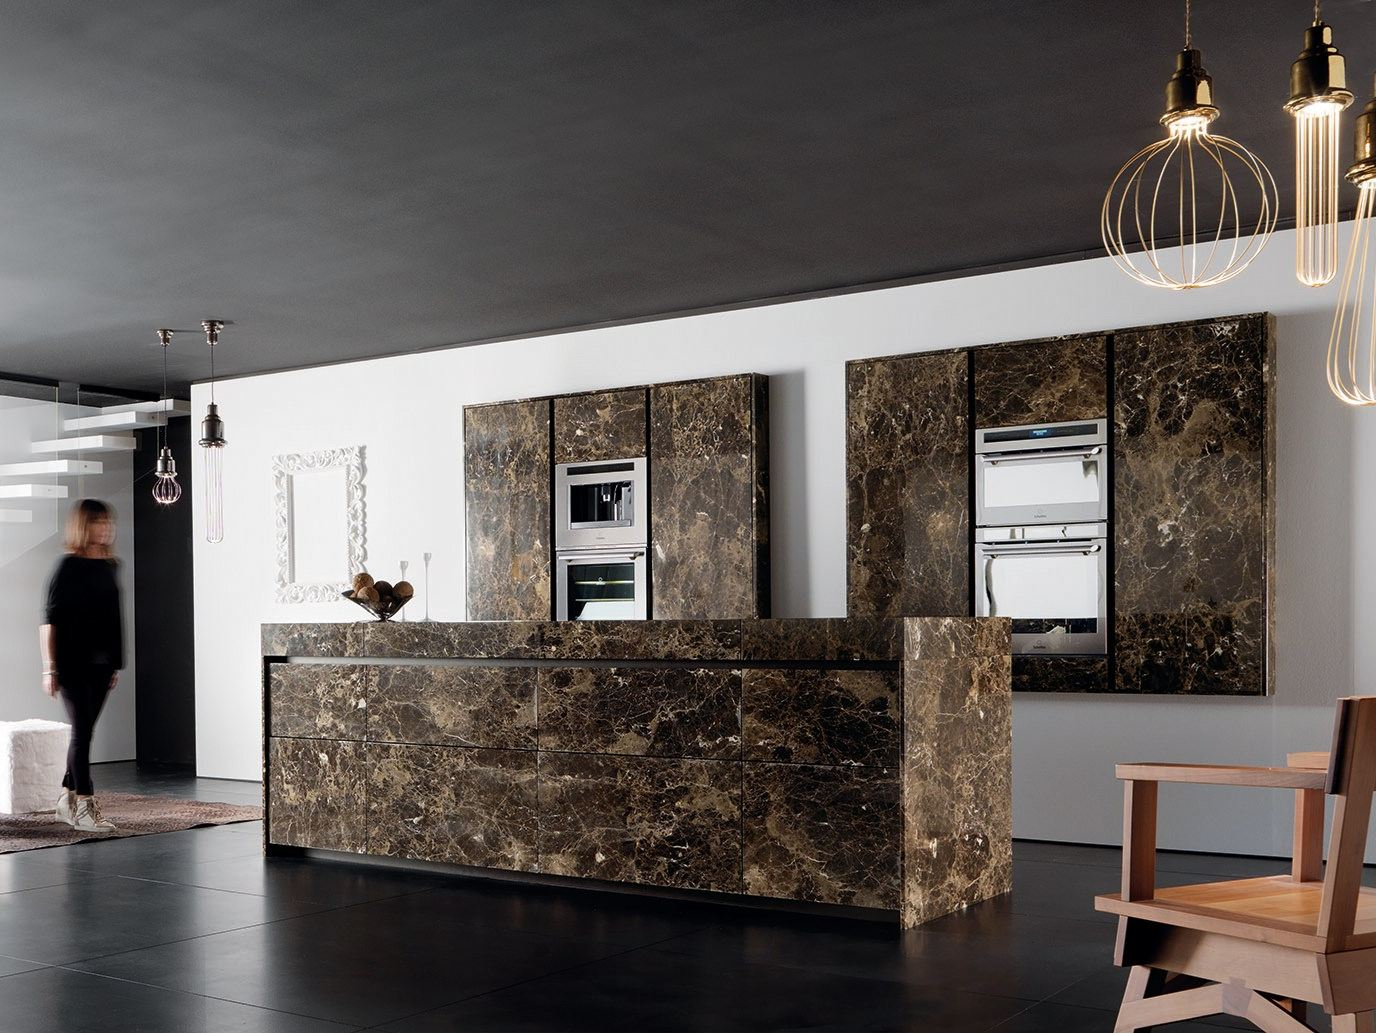 Cucine in marmo | Archiproducts